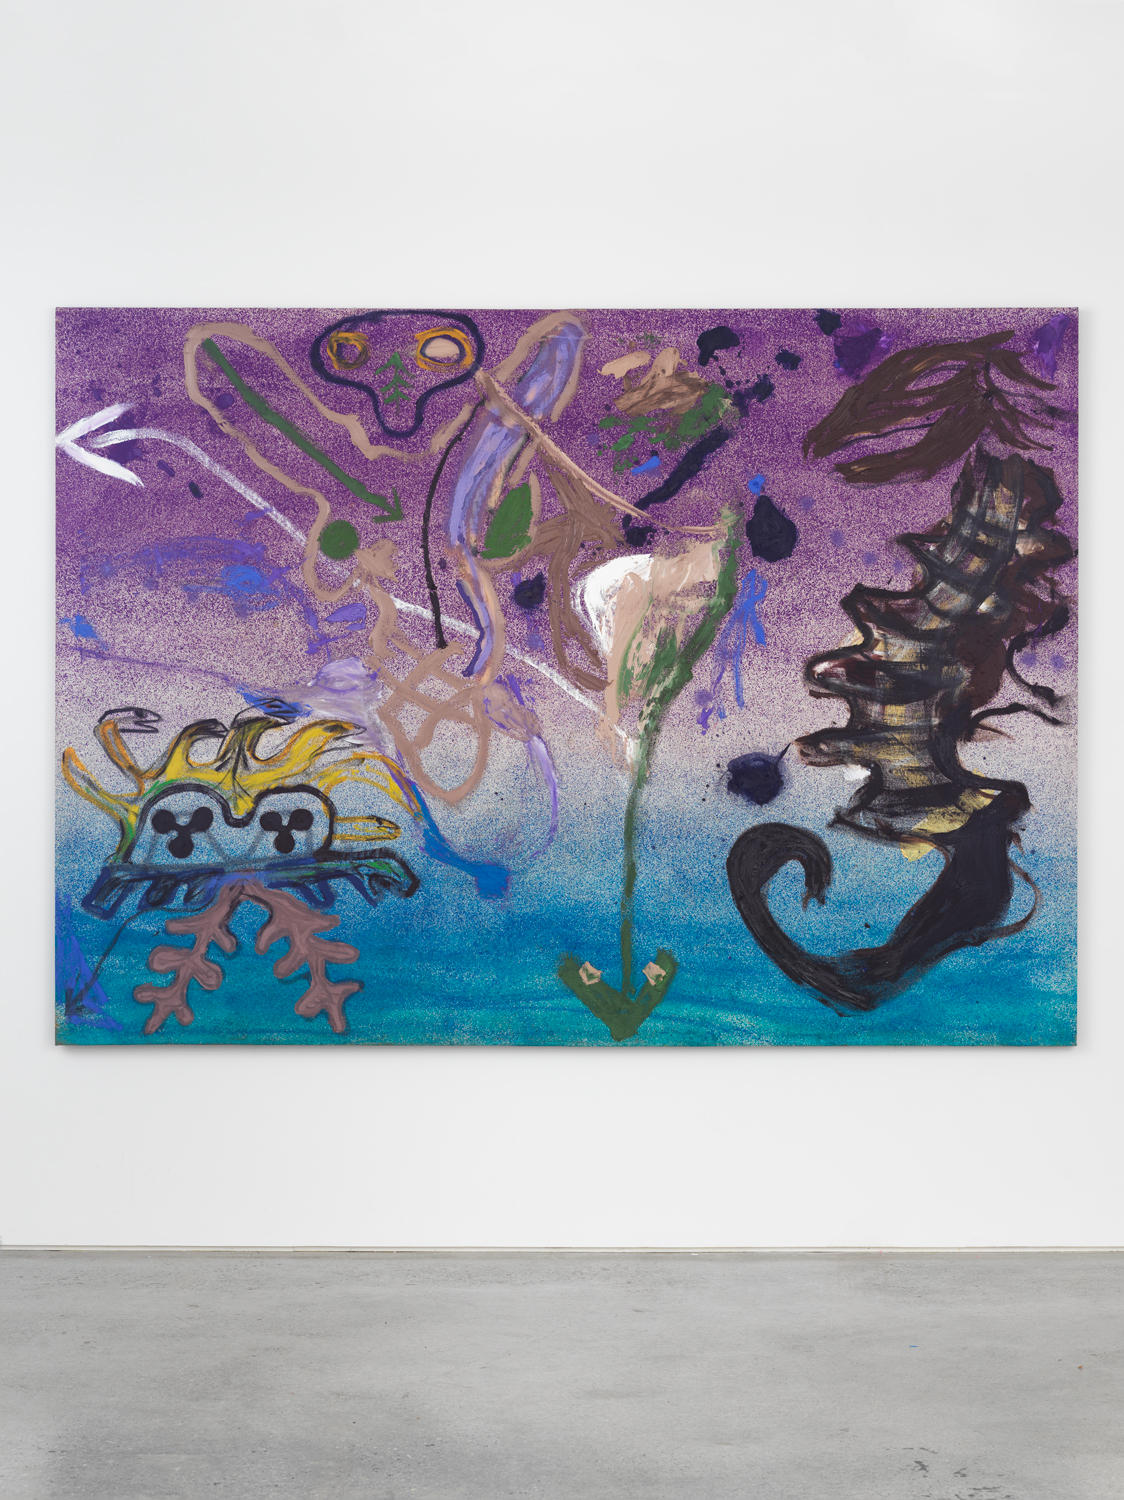 Bill Saylor, Cly-Fy, 2019, oil, spray paint, and Flashe on canvas, 74h x 104w in.